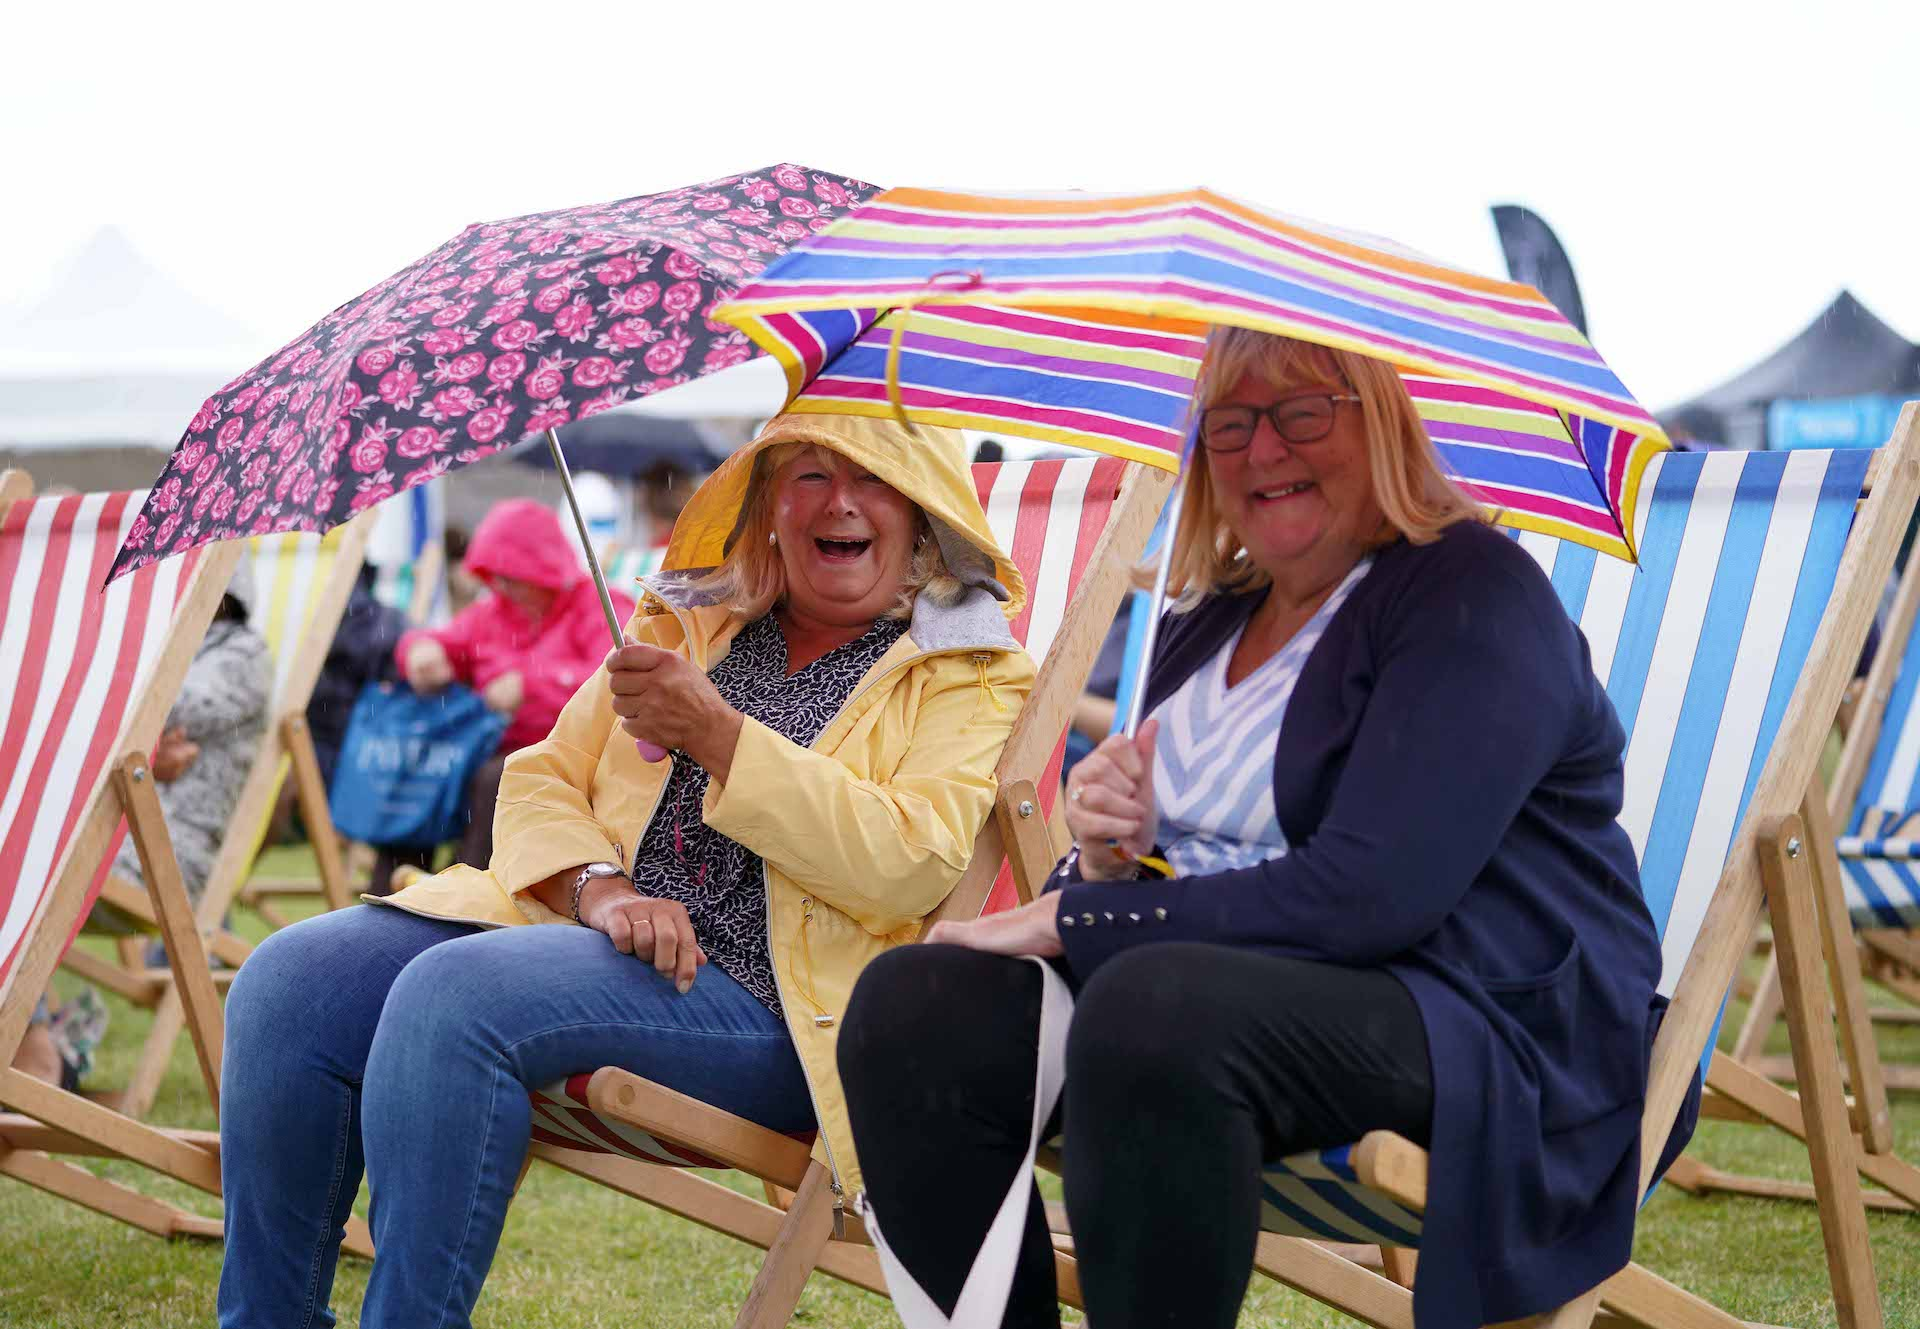 Ladies sitting in beach chairs, holding umbrellas, at Seaham Food Festival